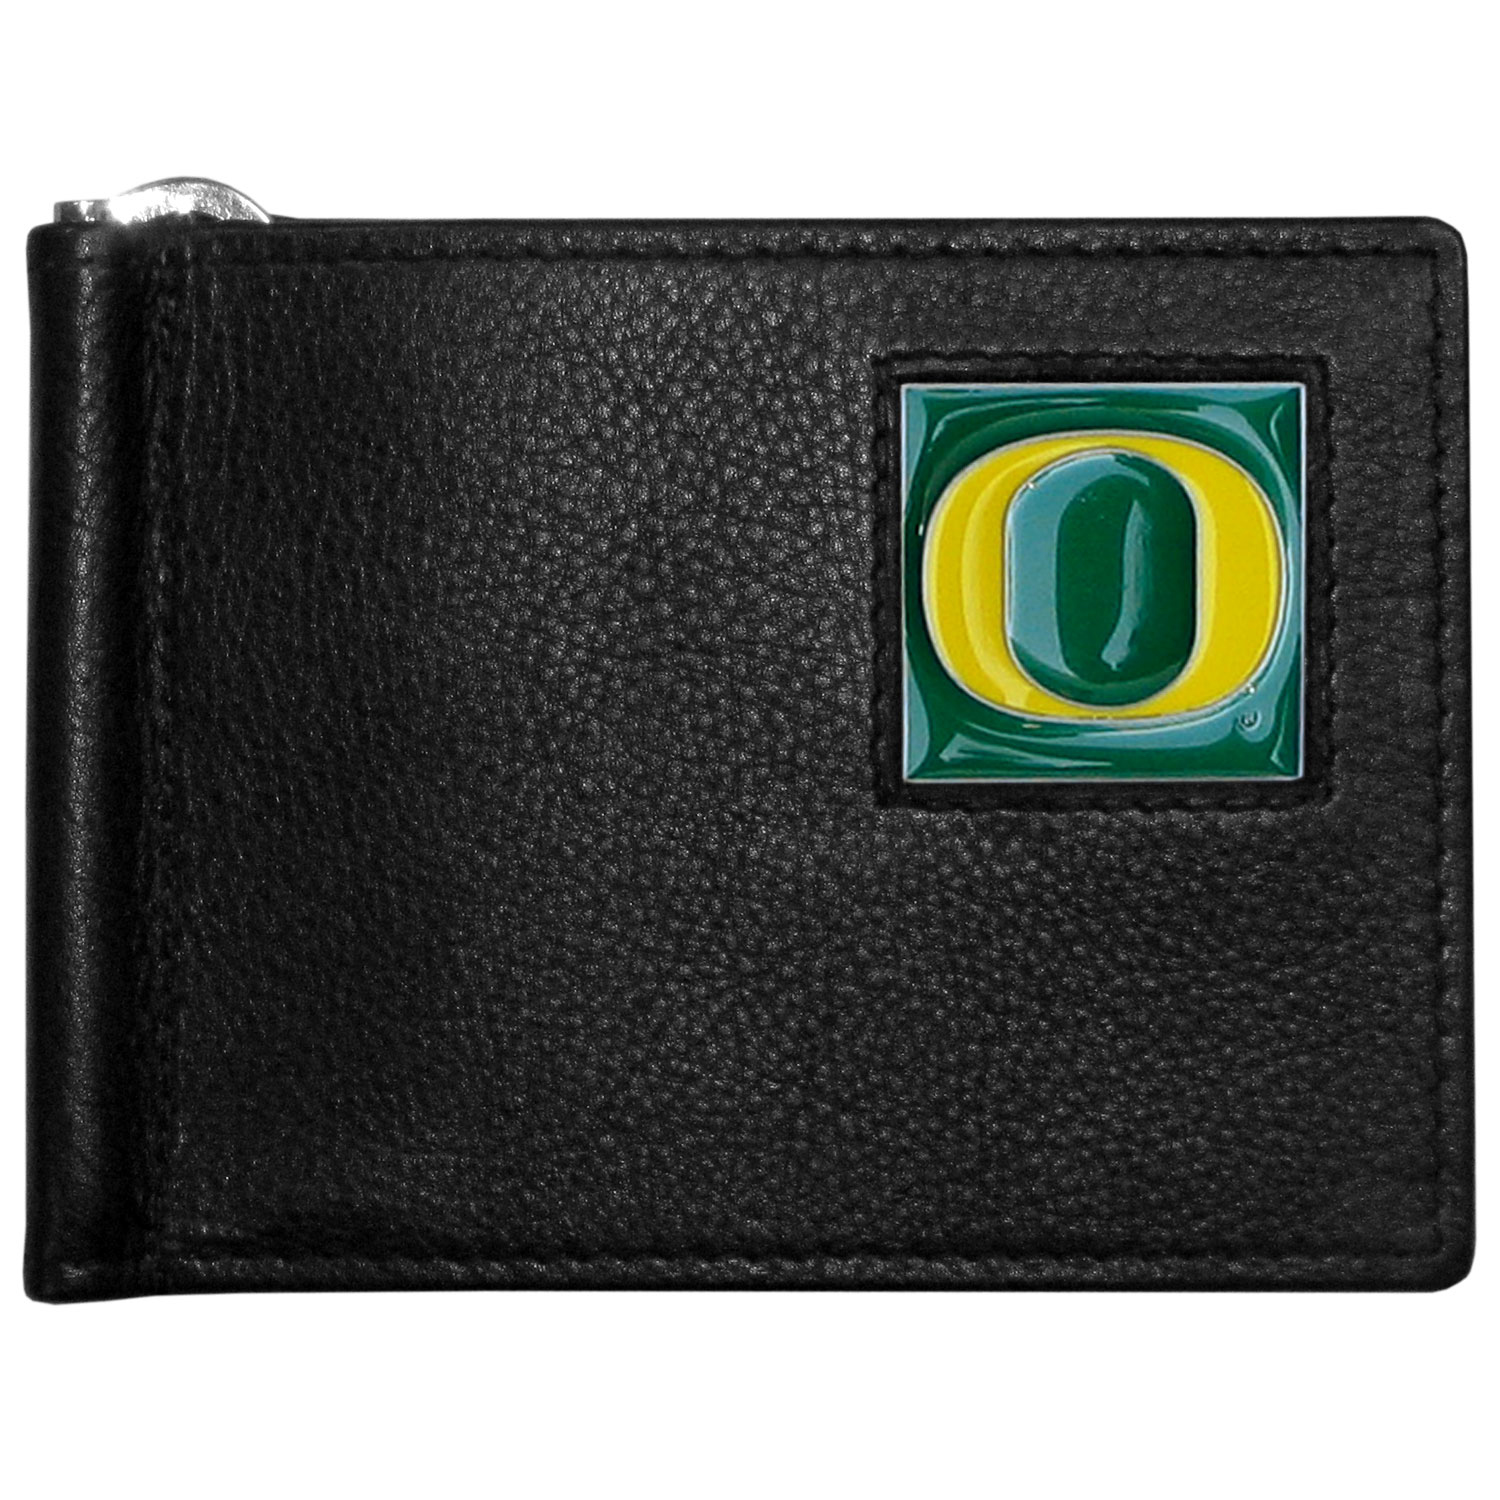 Oregon Ducks Leather Bill Clip Wallet - This cool new style wallet features an inner, metal bill clip that lips up for easy access. The super slim wallet holds tons of stuff with ample pockets, credit card slots & windowed ID slot. The wallet is made of genuine fine grain leather and it finished with a metal Oregon Ducks emblem. The wallet is shipped in gift box packaging.